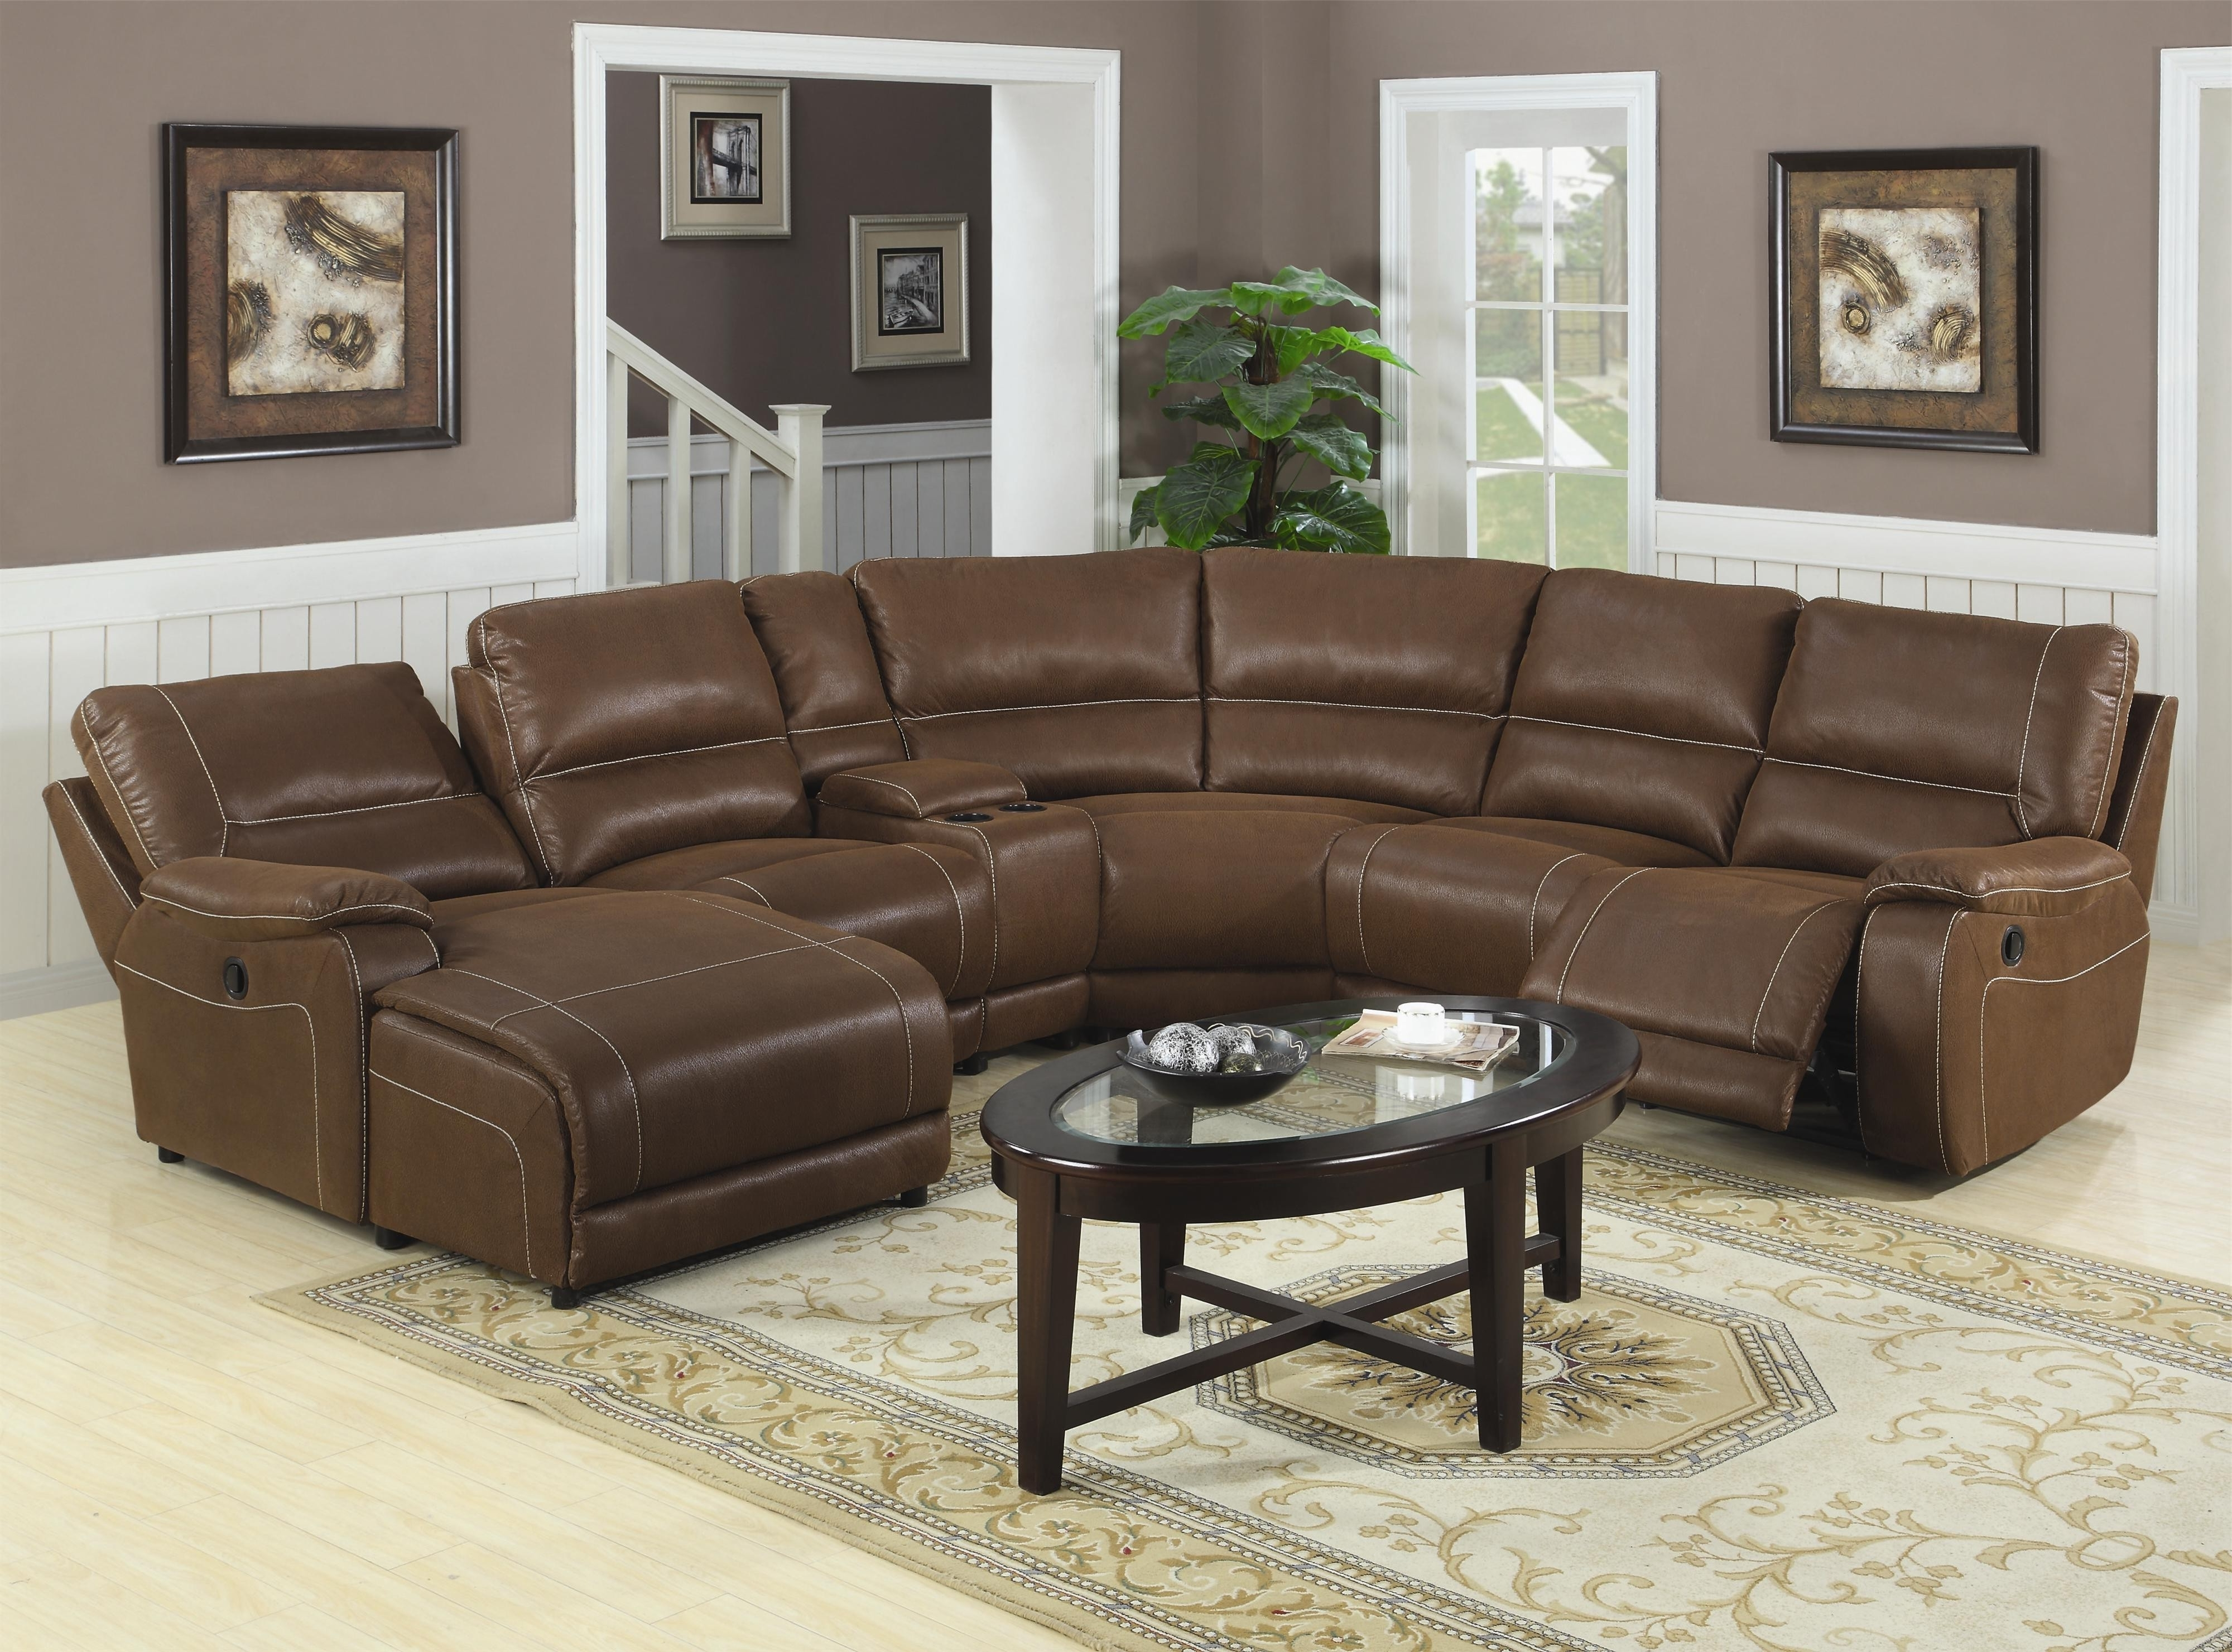 Fashionable Brown Leather Recliner Sectional Sofa With Oval Black Teak Wood In Leather Recliner Sectional Sofas (View 6 of 20)